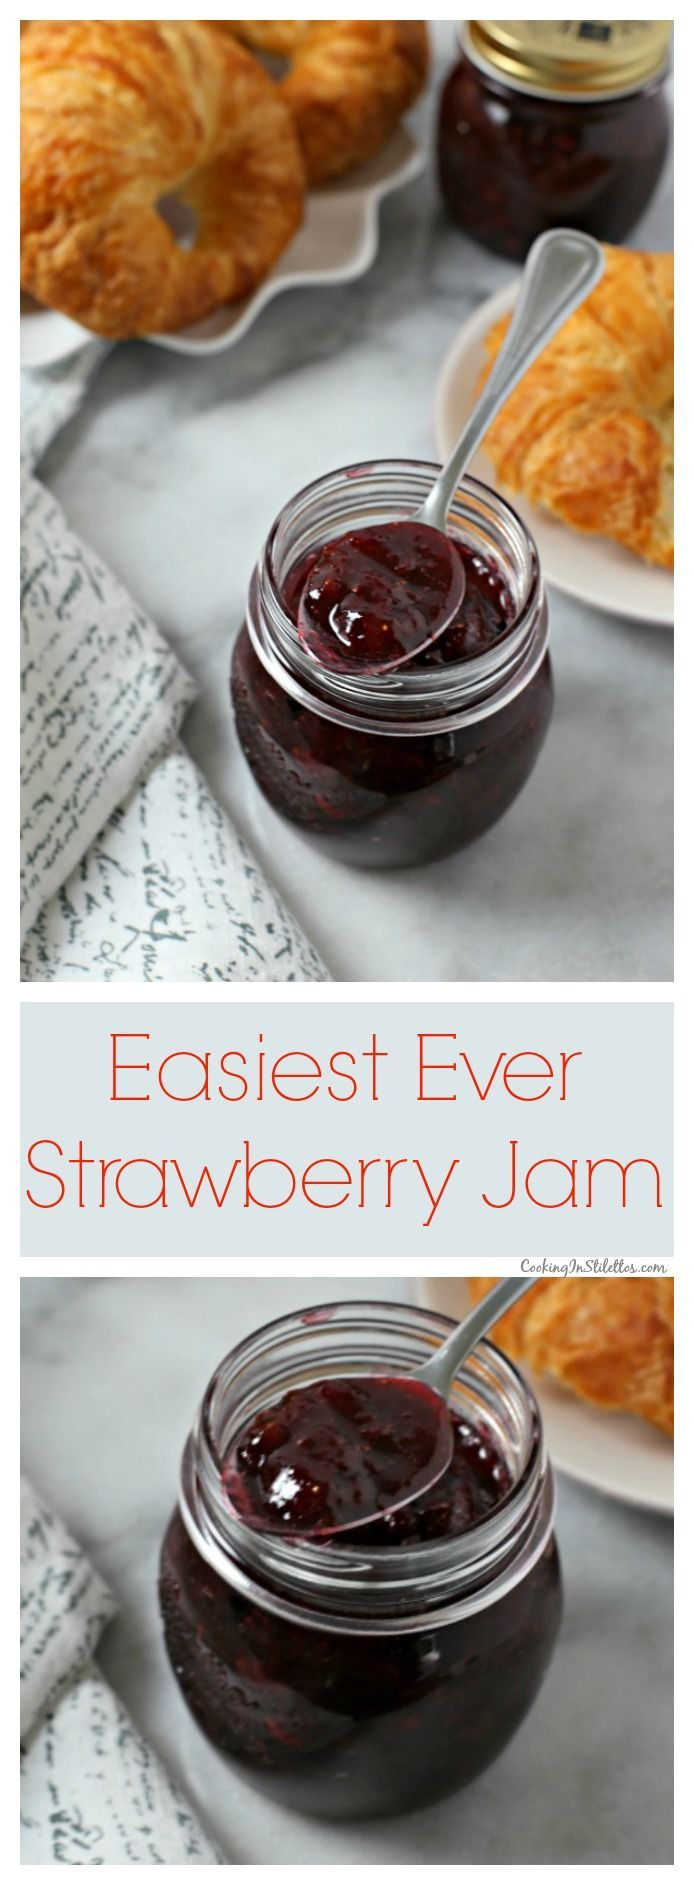 This Easiest Ever Strawberry Jam recipe from CookingInStilettos.com is perfect for brunch this weekend with just a few ingredients for a delicious fresh tasting strawberry jam!  |  Strawberry Jam | Refrigerator Jam | Freezer Jam | Strawberries | Made from Scratch   via @CookInStilettos